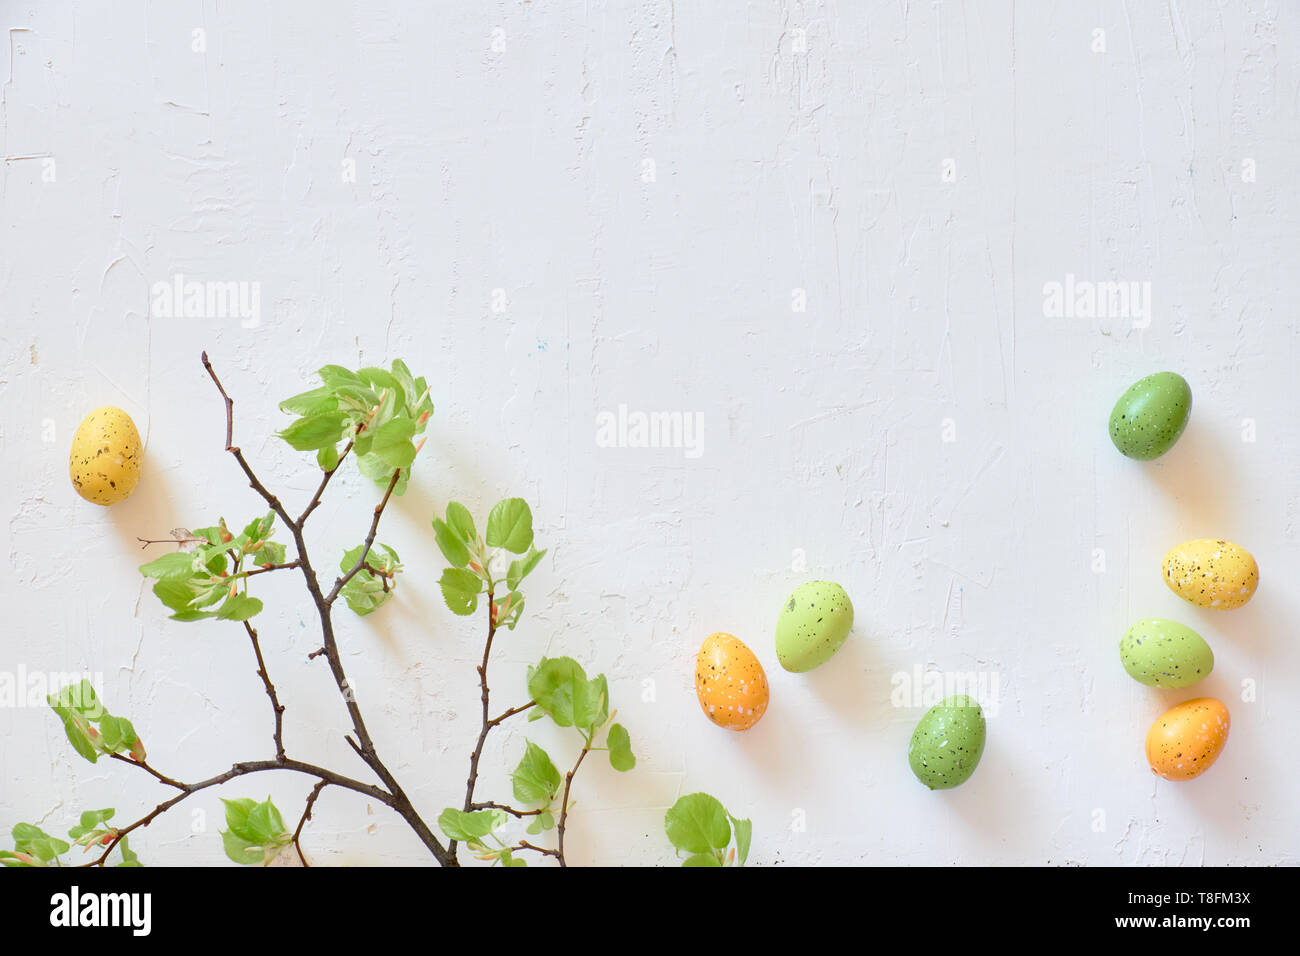 Fresh spring lime leaves, green and yellow decorative eggs. Easter flat lay on textured white background, copy-space - Stock Image